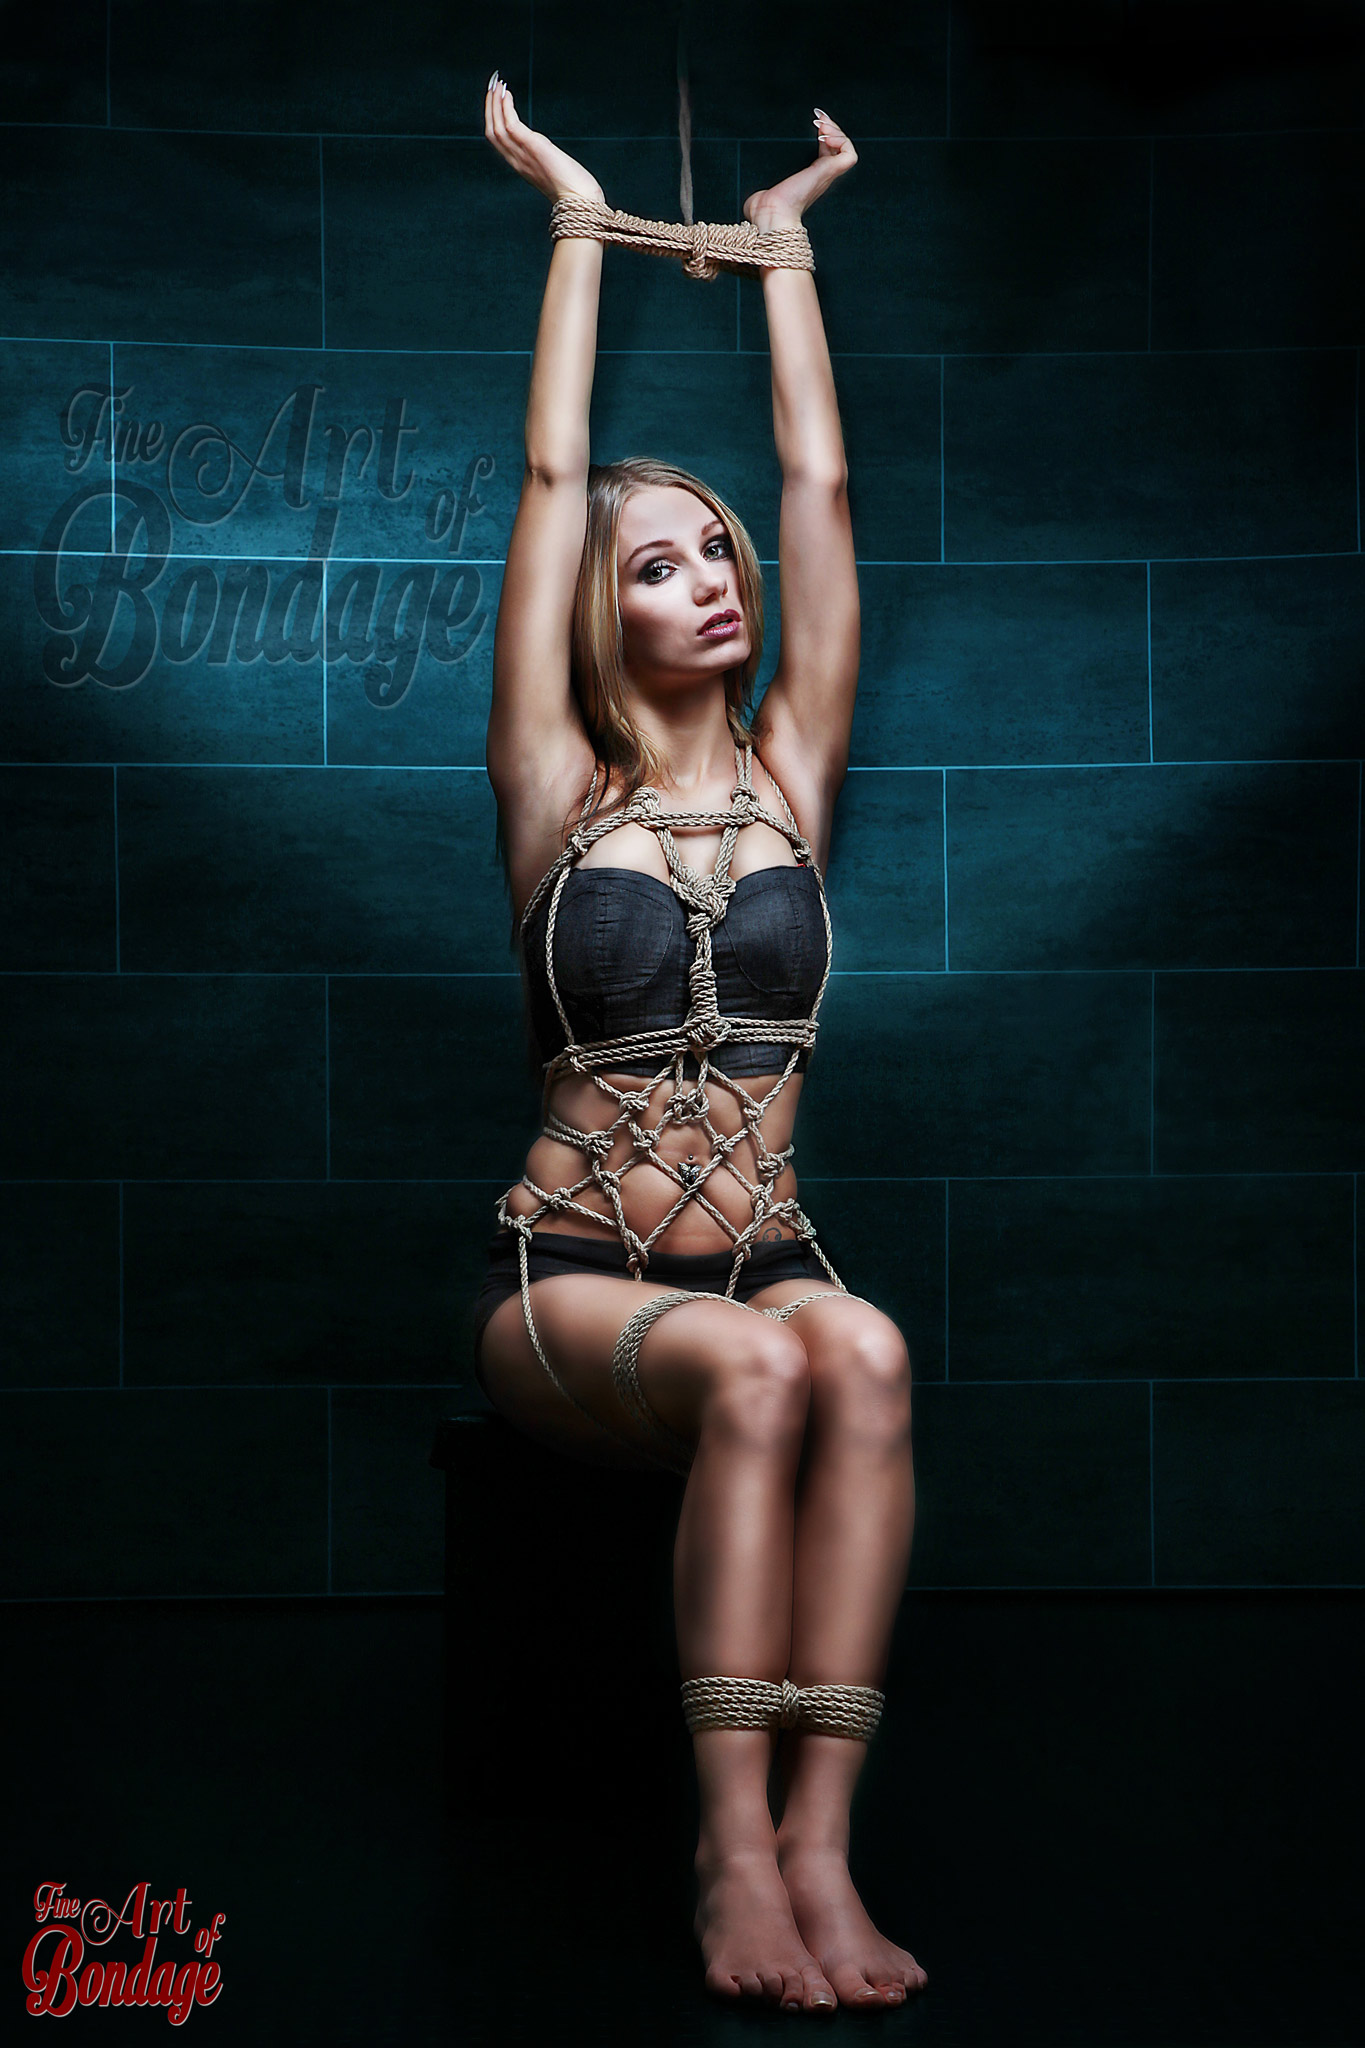 bondage girl  Tied up girl - rope artwork - Fine Art of Bondage